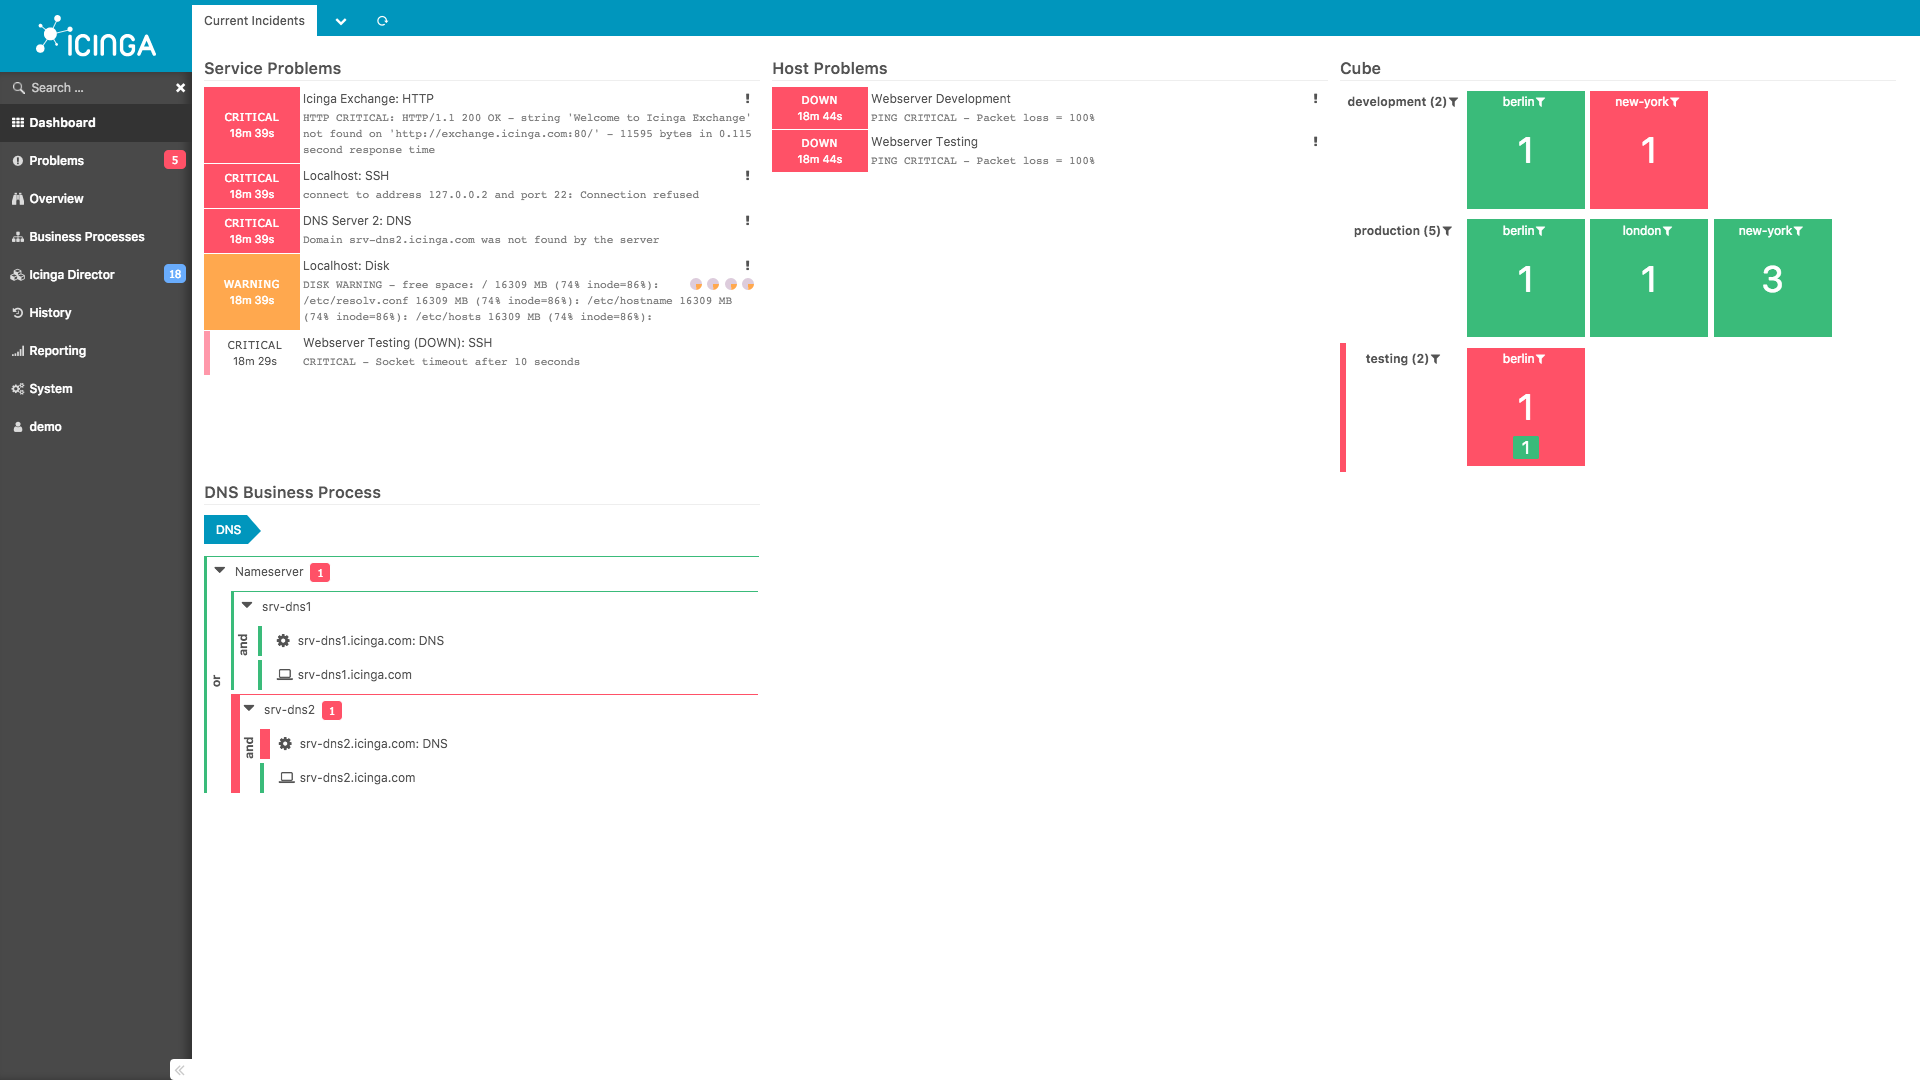 Icinga Dashboard